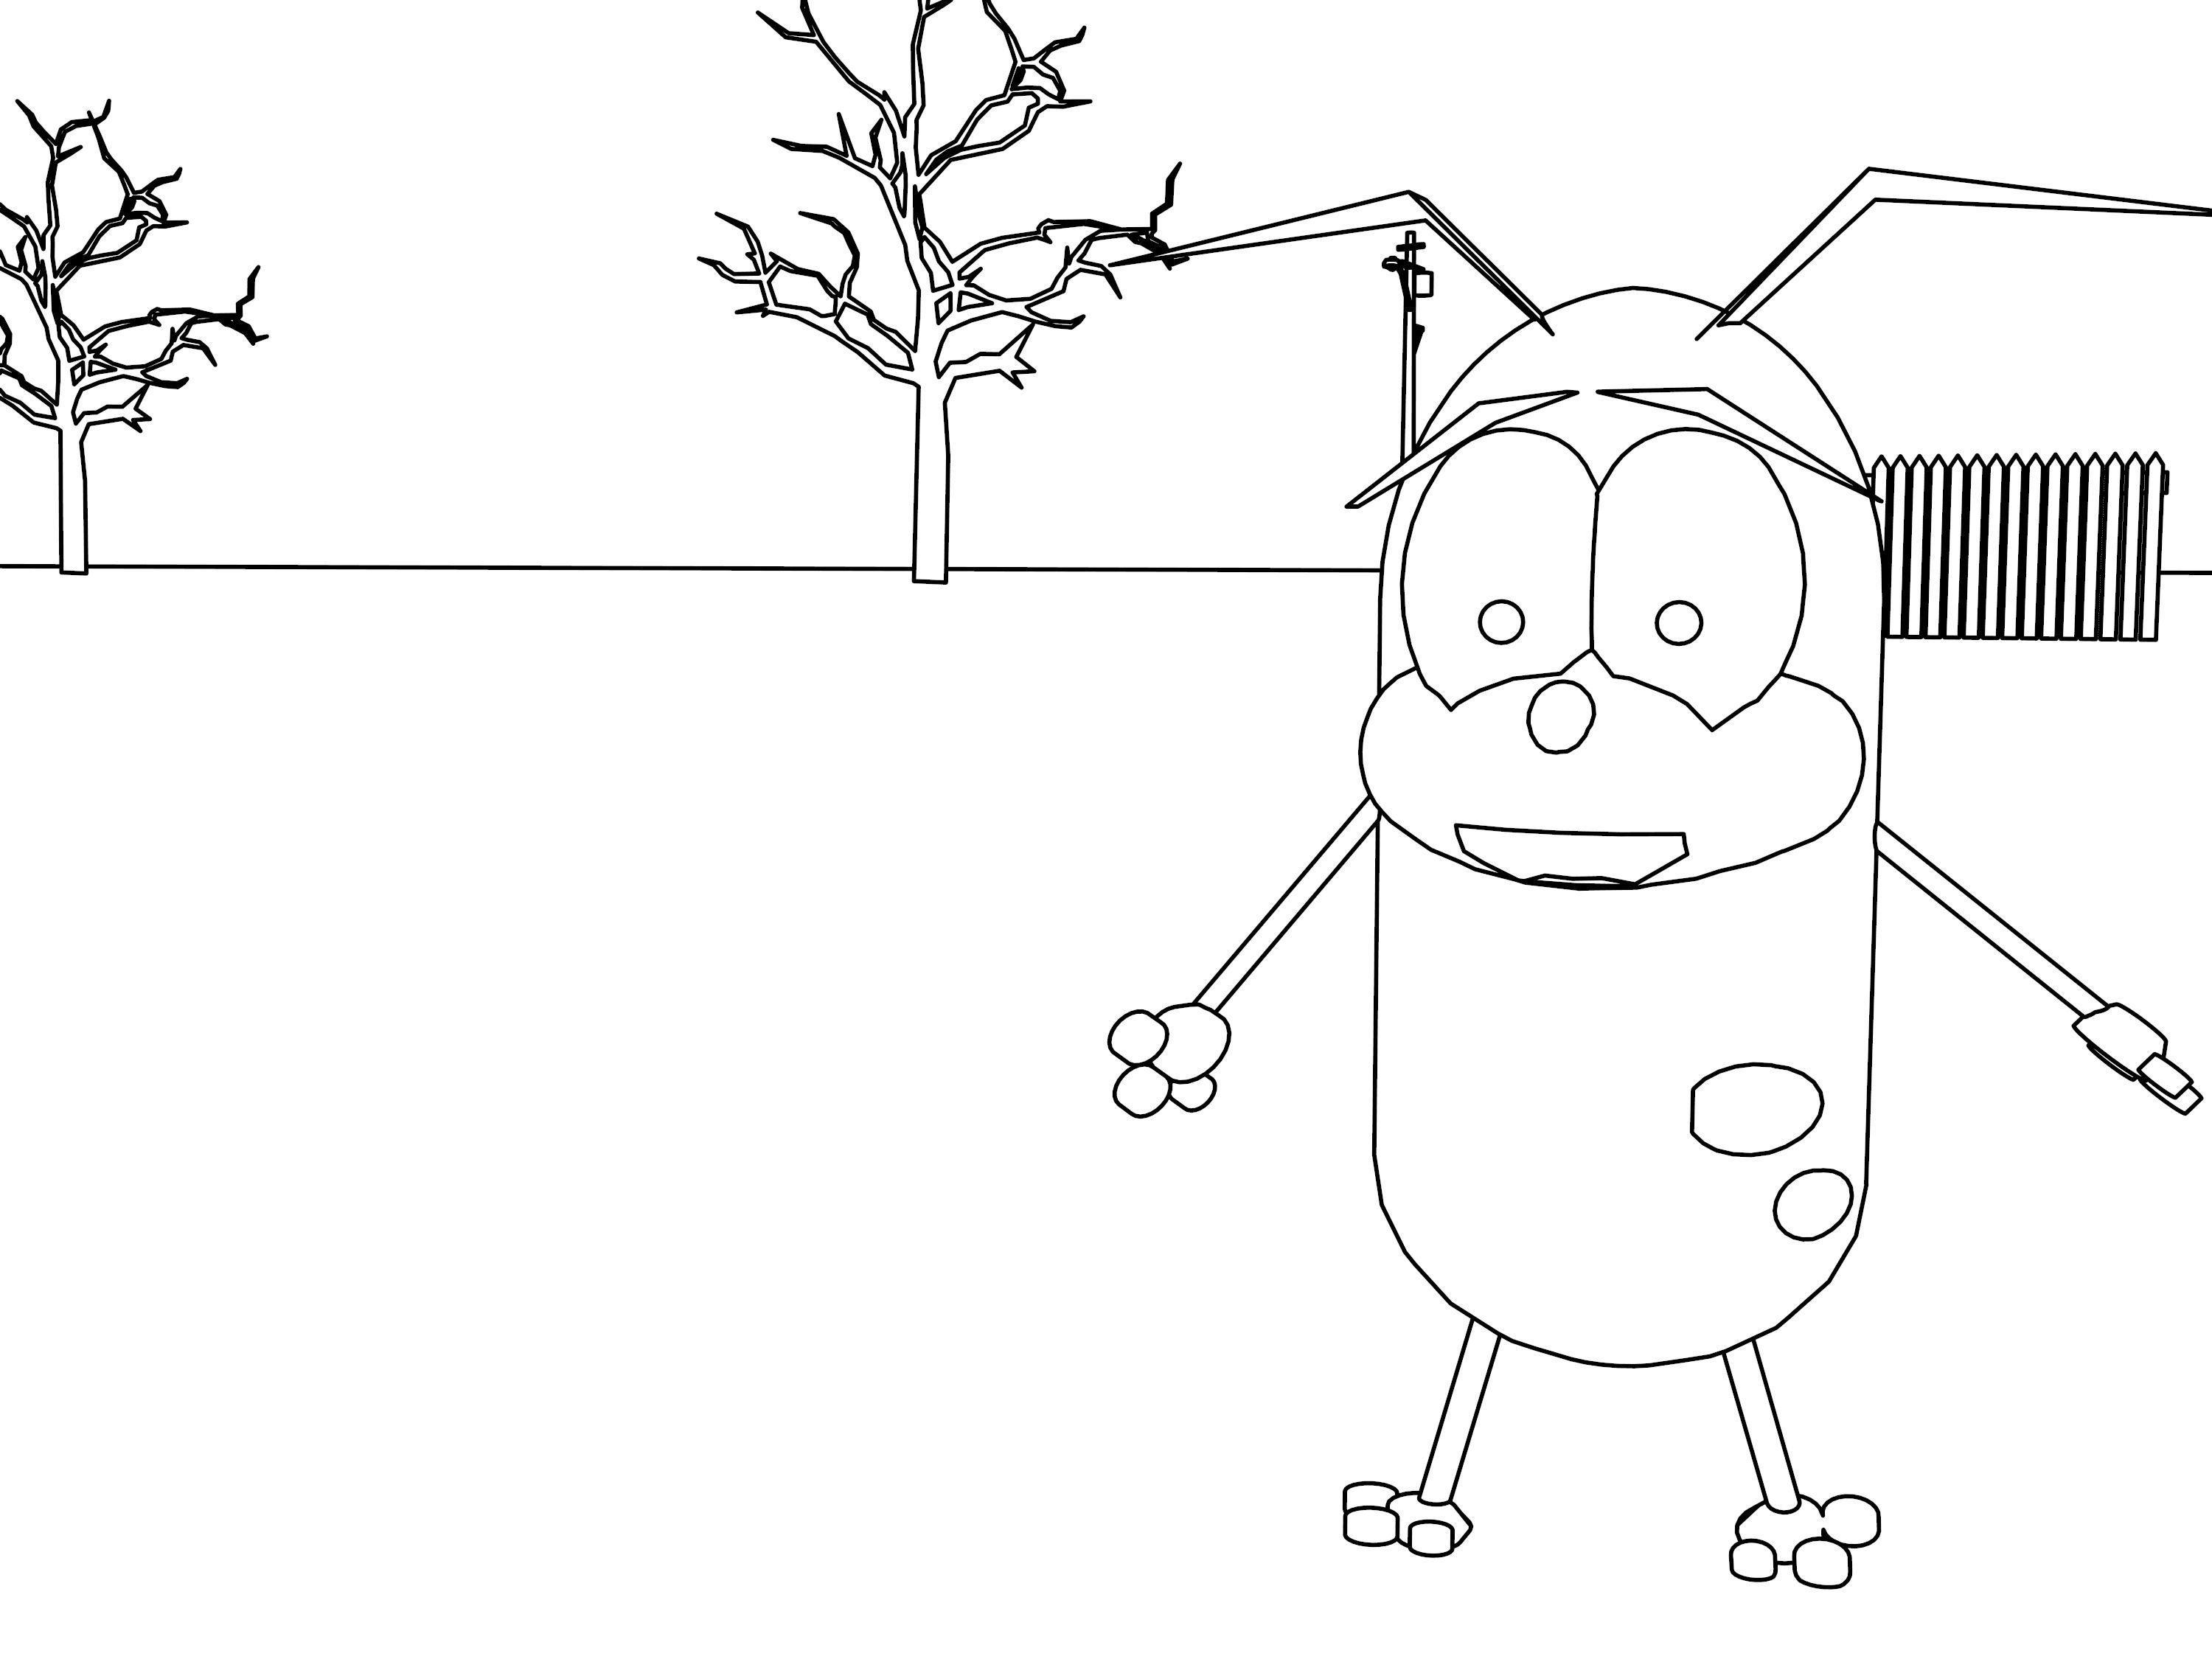 Cool Courage The Cowardly Dog Cartoon Coloring Pages Cartoon